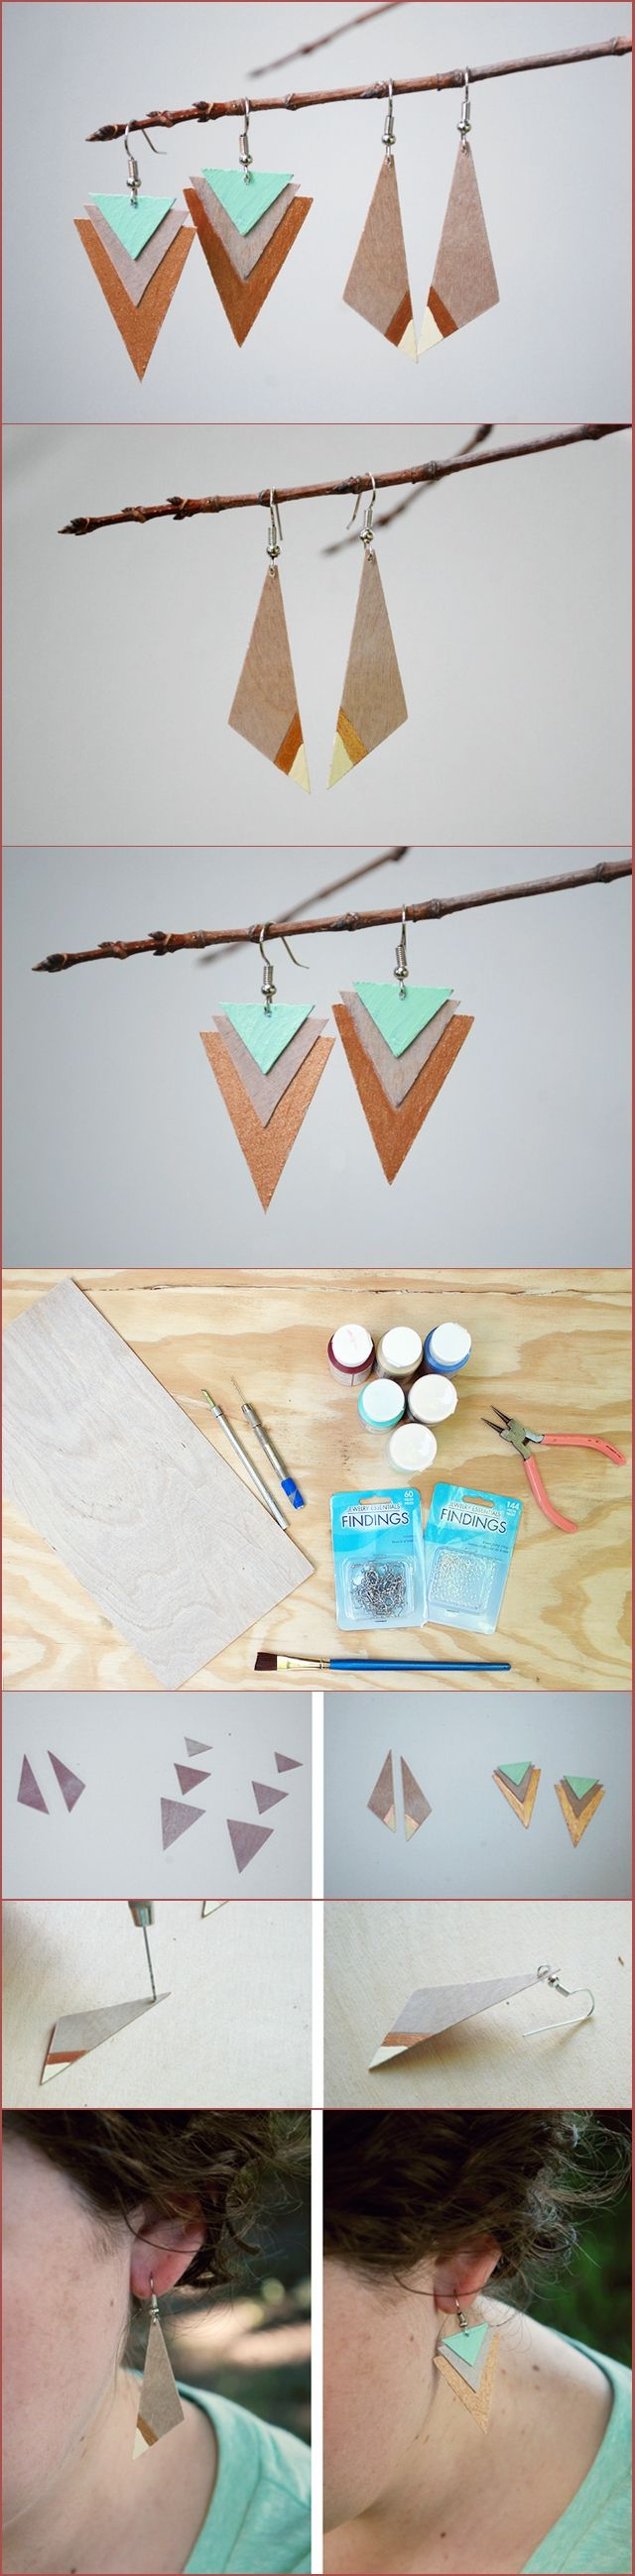 DIY WOOD EARRINGS